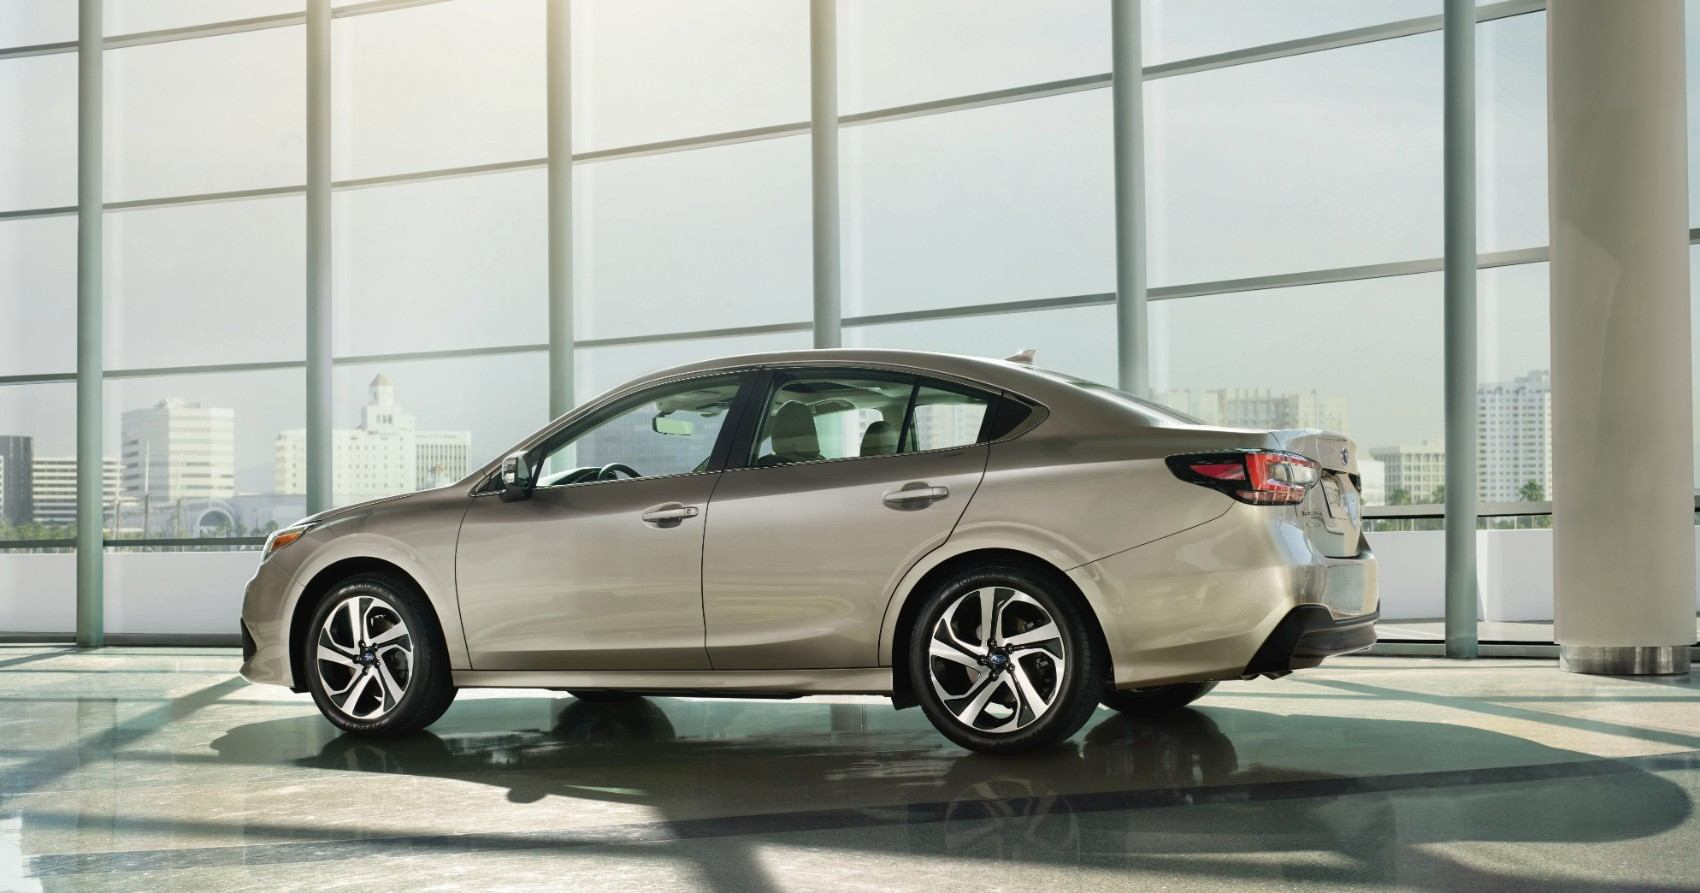 3 Subaru Legacy All Wheel Drive Release Date, Color Options